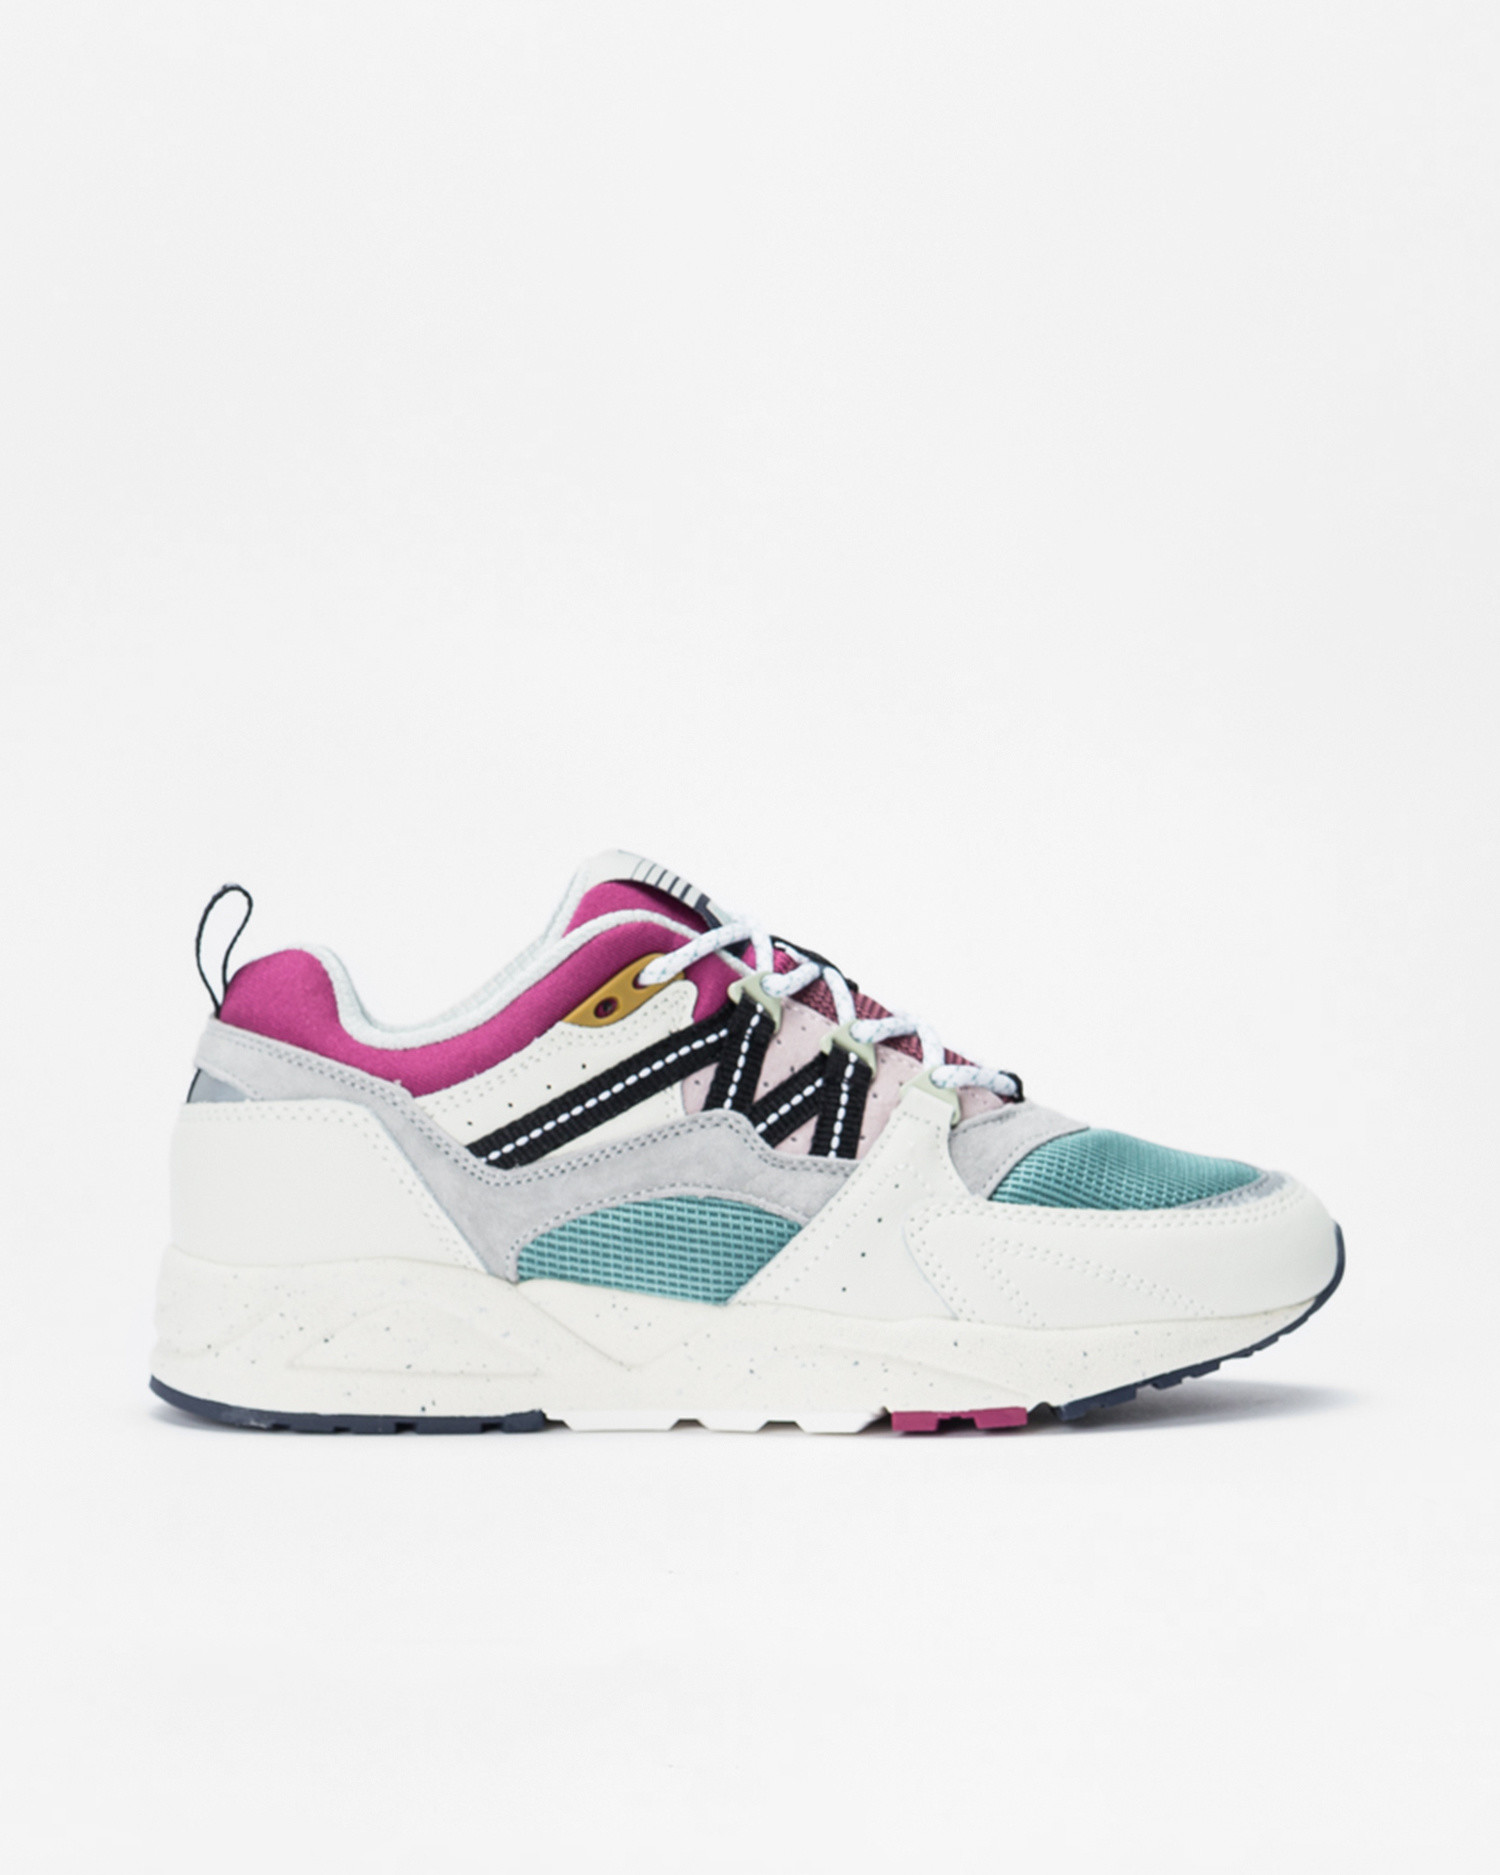 Fusion 2.0 Lily white/gray violet